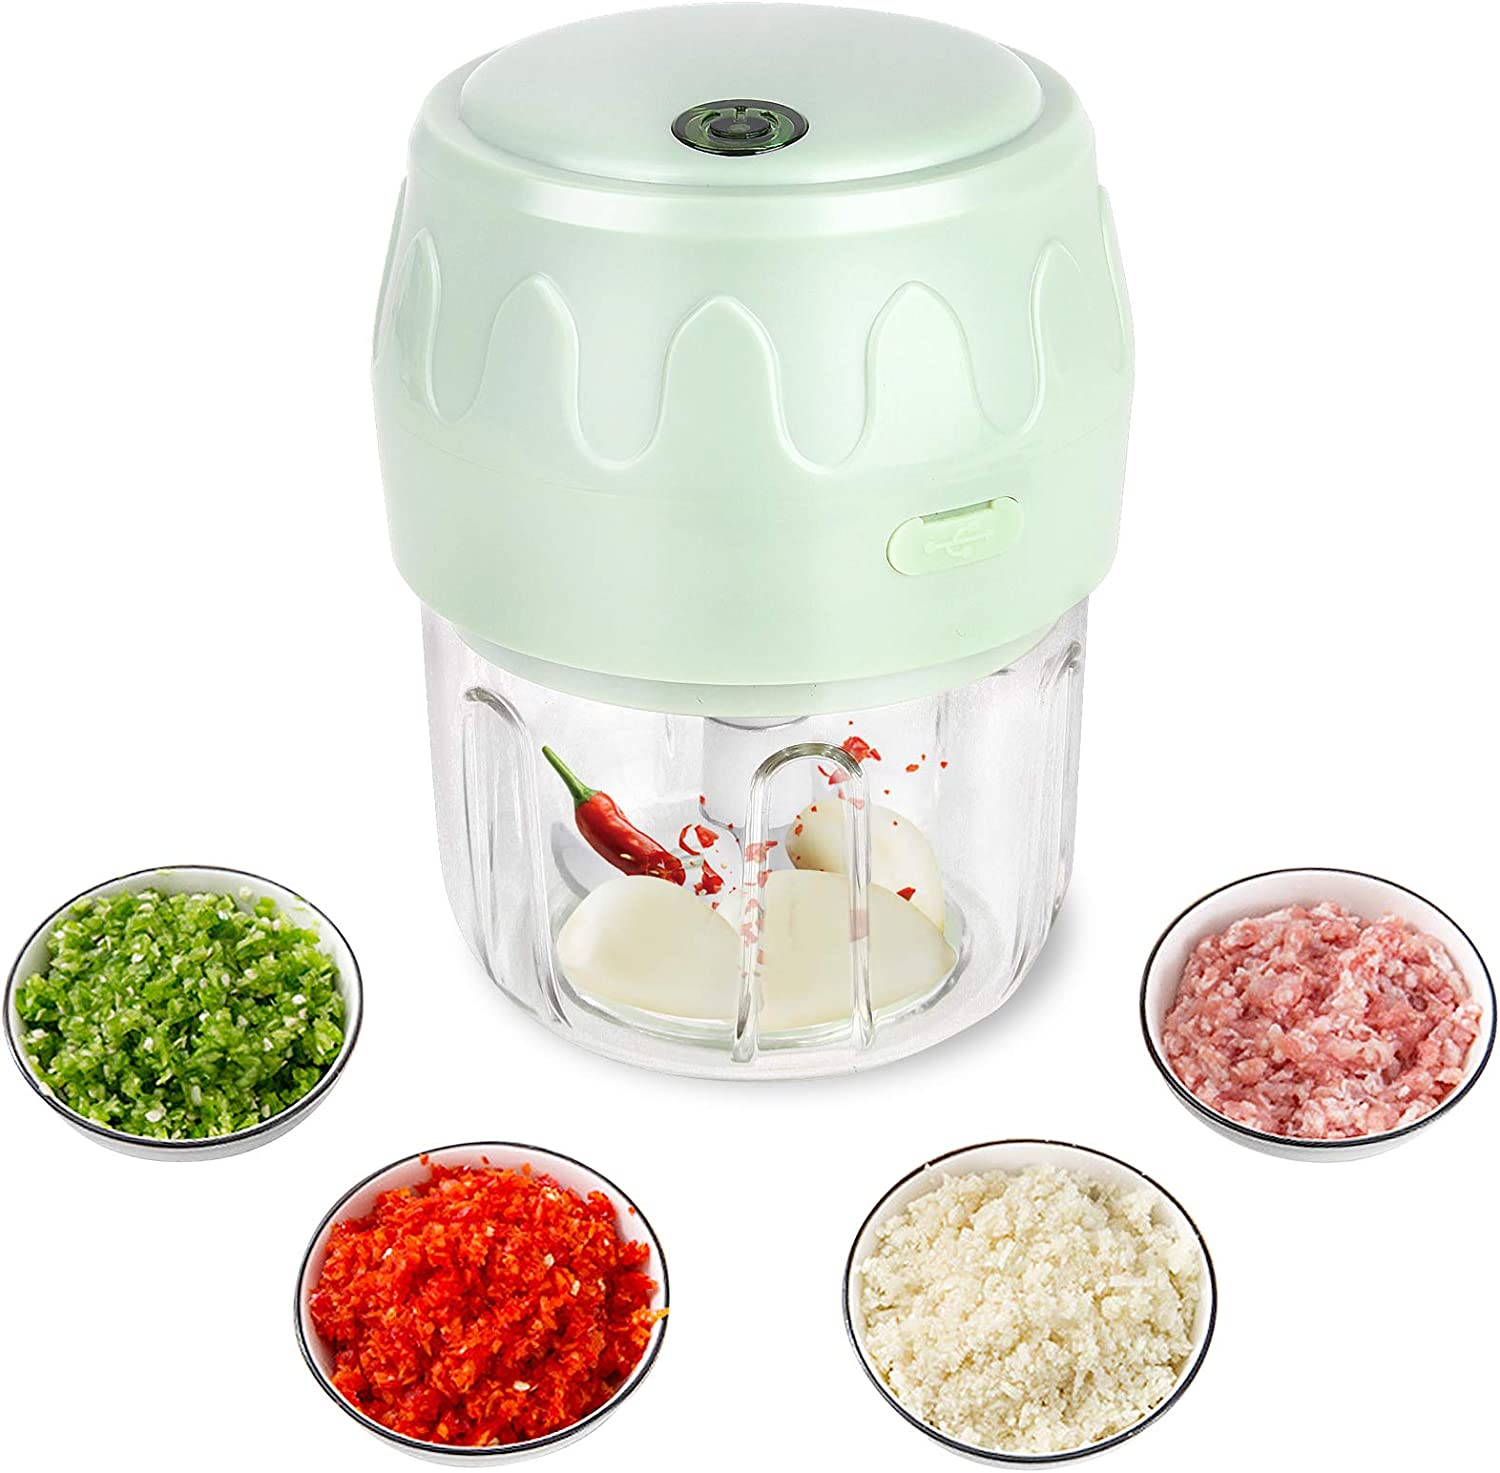 Semlos 250ML Mini Electric Garlic Chopper, Wireless Portable Food Processor Mincer Blender Mixer, Fits for Cutter Vegetables, Meat, Fruits, Great Kitchen Blender Gadgets(Green)